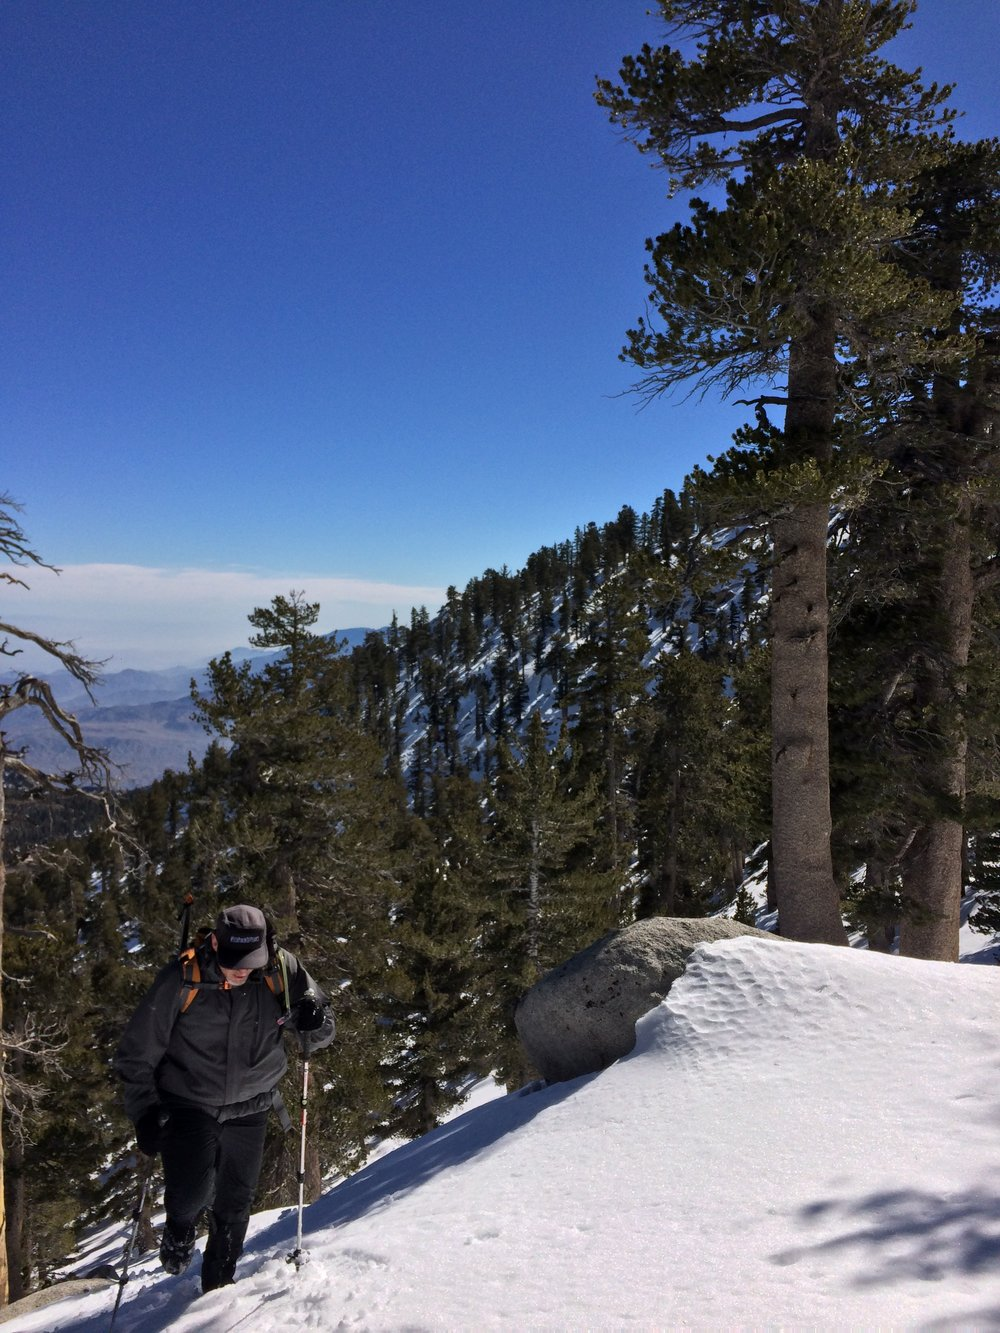 During the winter months, an ascent up San Jacinto becomes a bona fide winter climb.